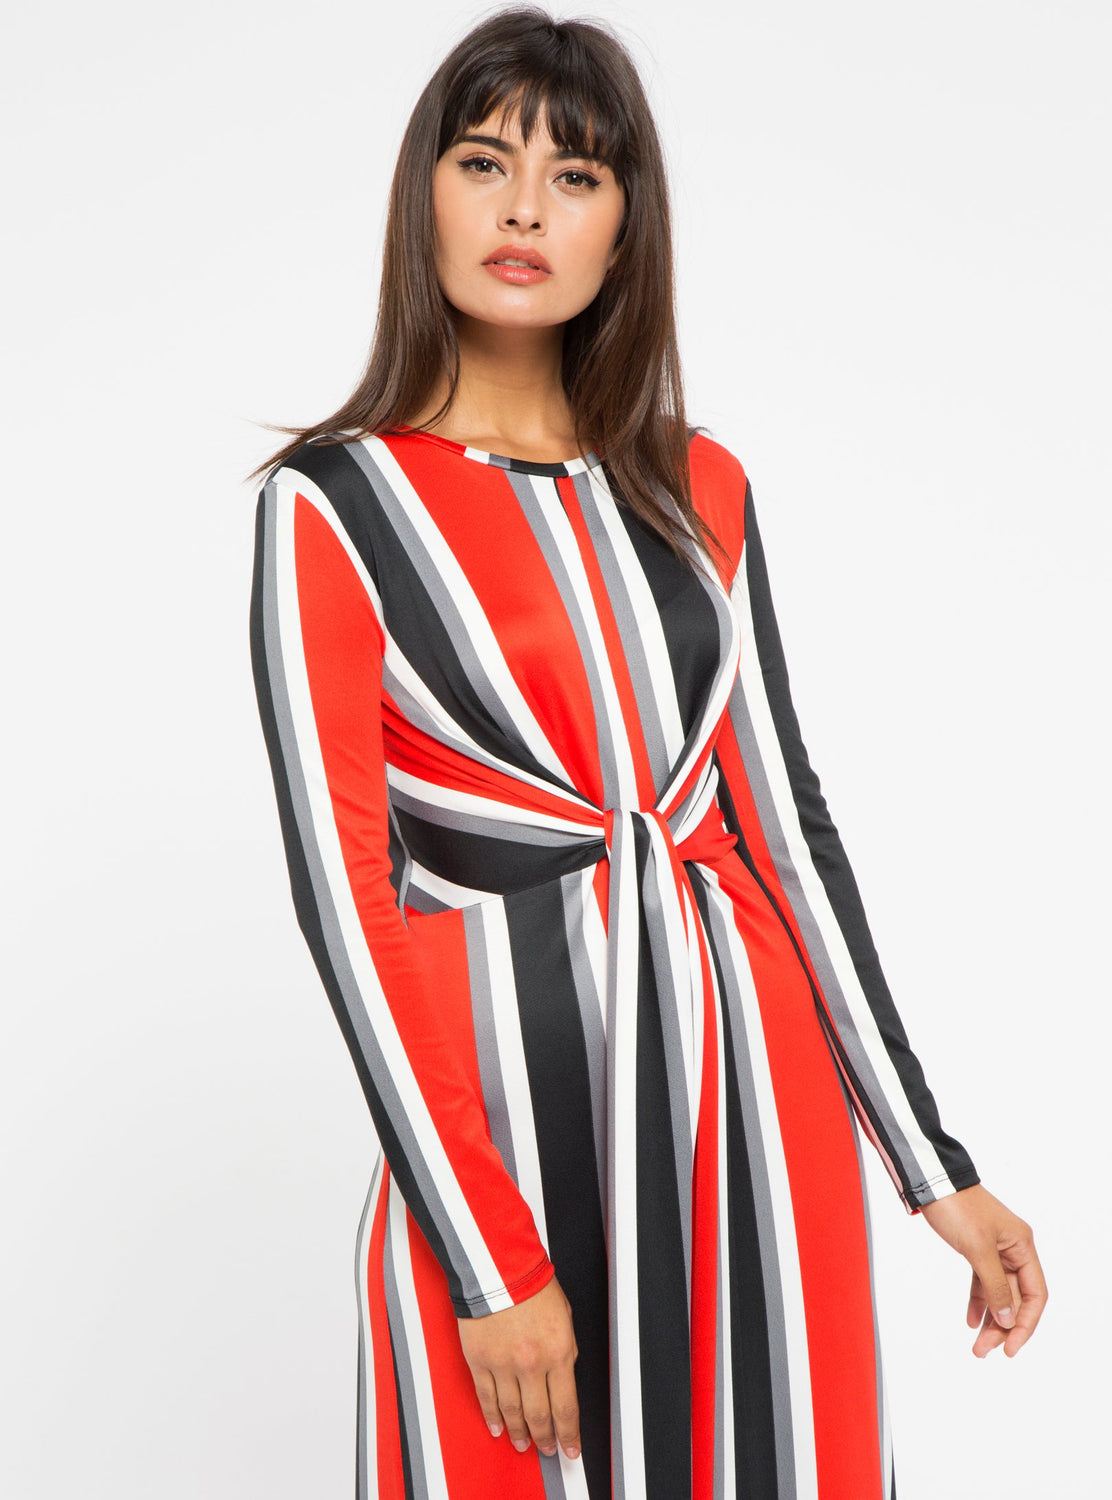 STORE WF Red Tie Front Stripe Midi Dress Modest Stripe Midi Dress with Long Sleeves and Tie Front in Red and Black